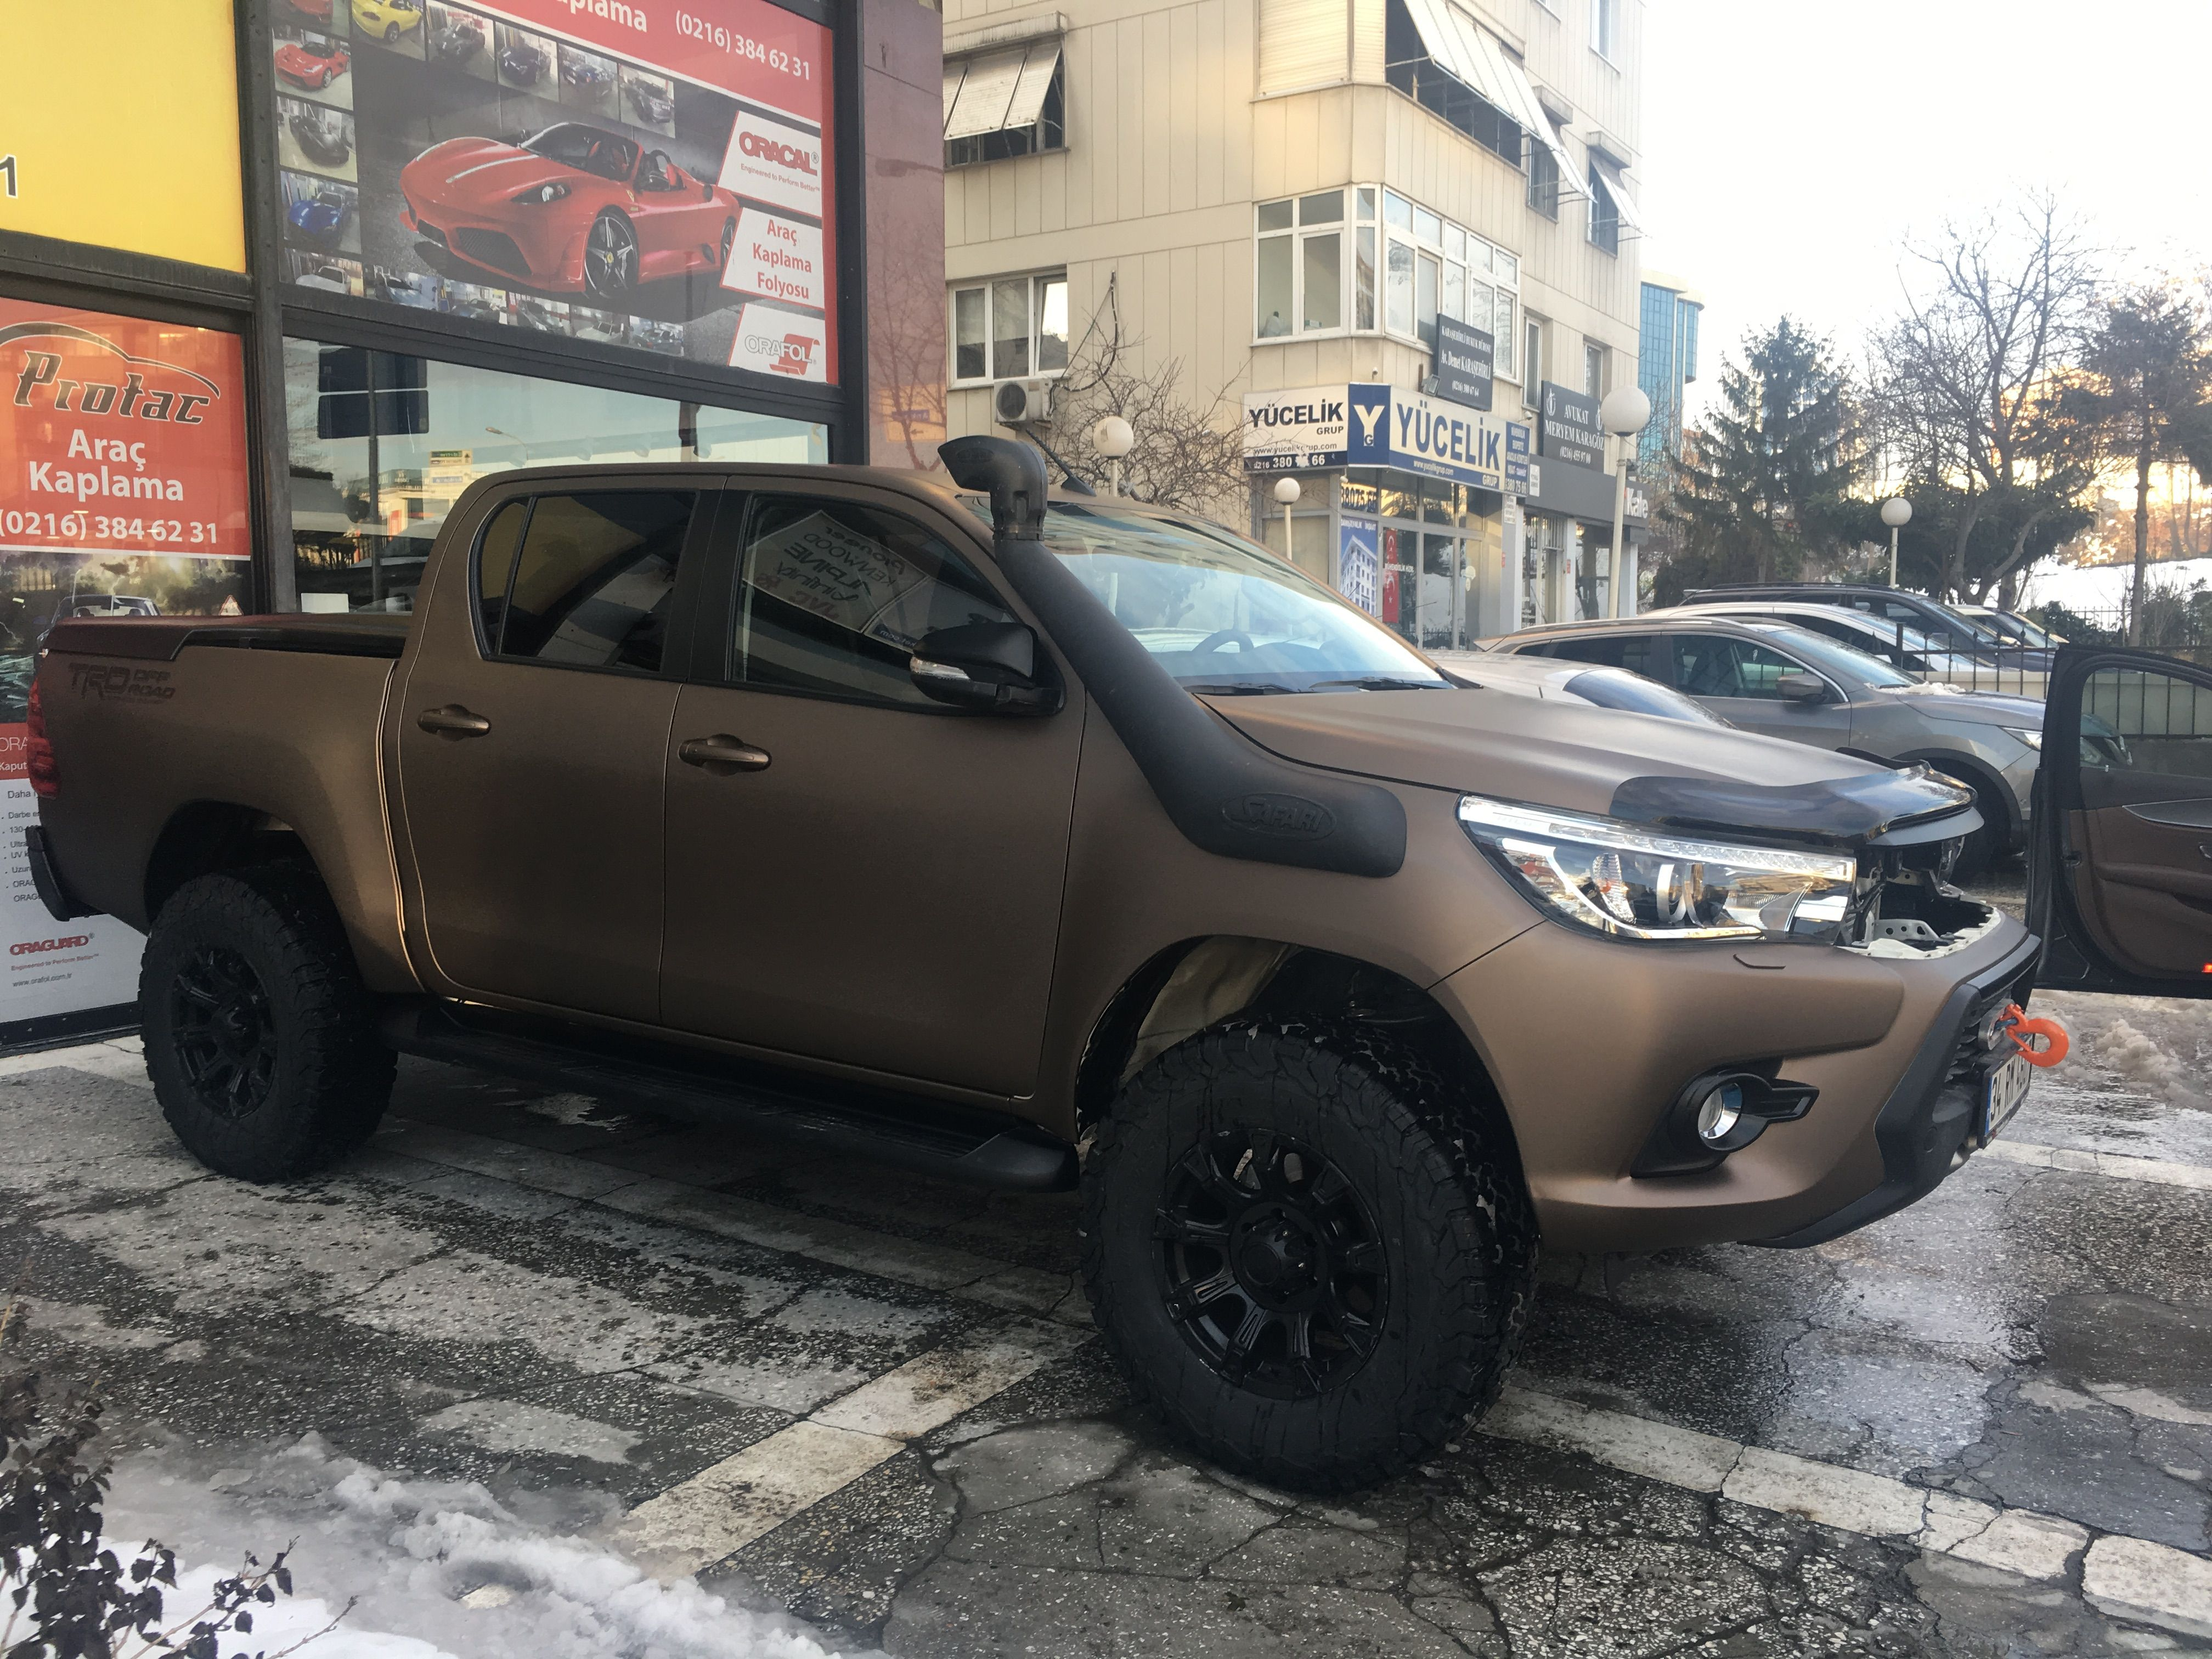 toyota revo toyota hilux pinterest toyota 4x4 and cars. Black Bedroom Furniture Sets. Home Design Ideas